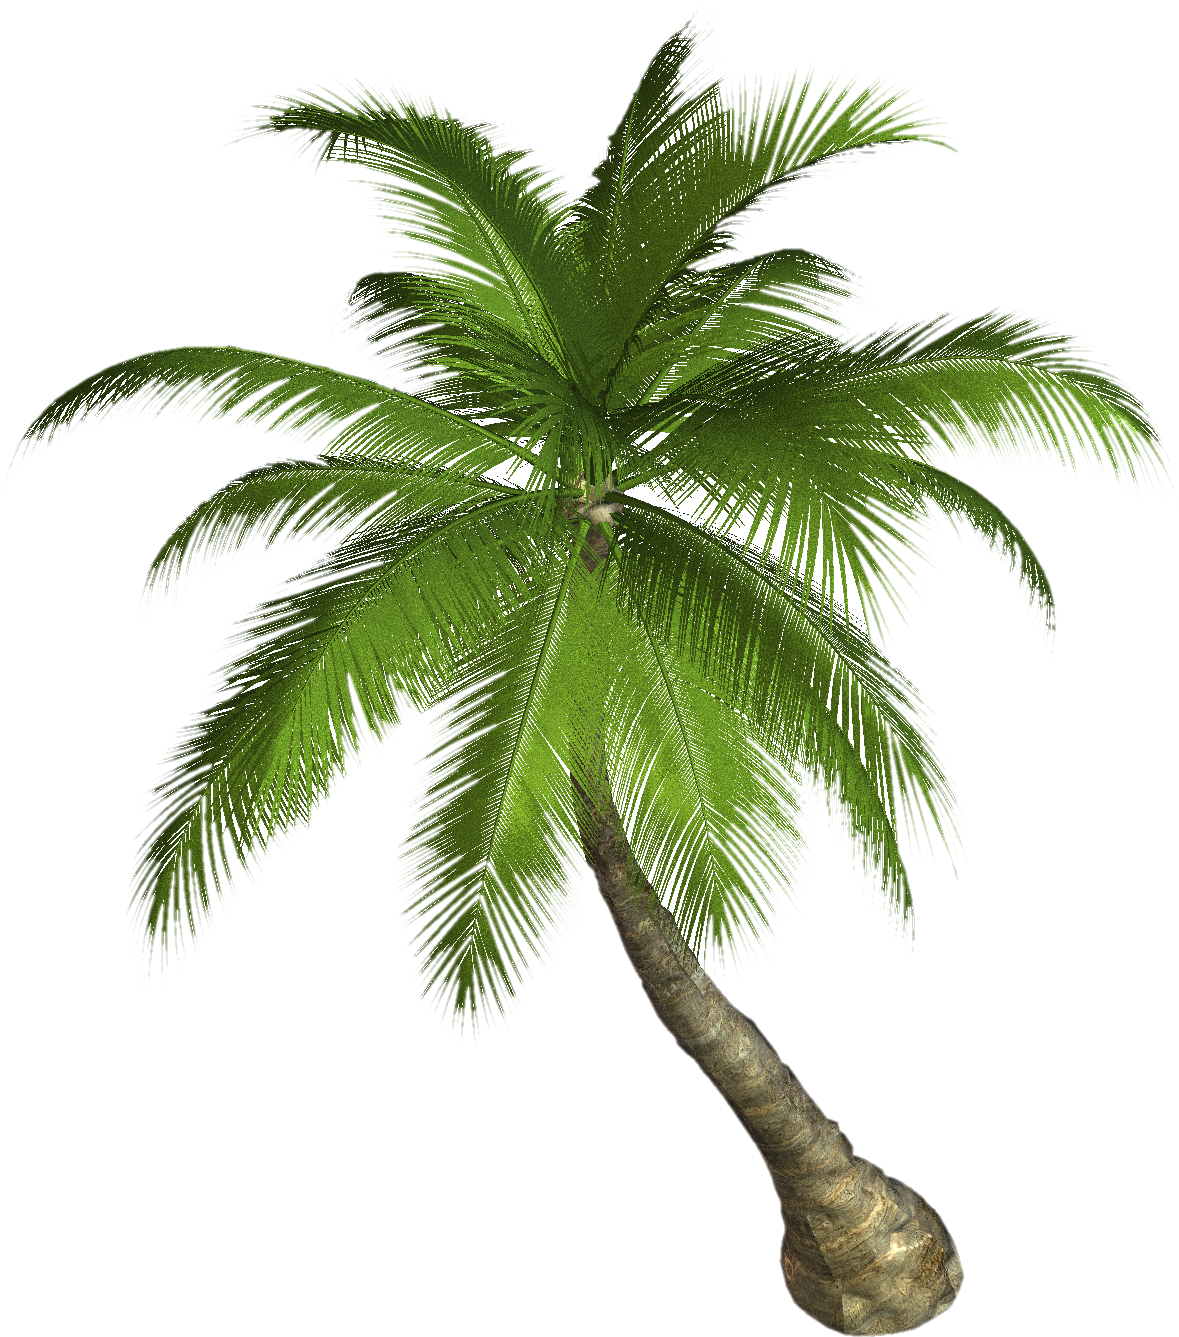 Explore Palm Trees, Palms, an